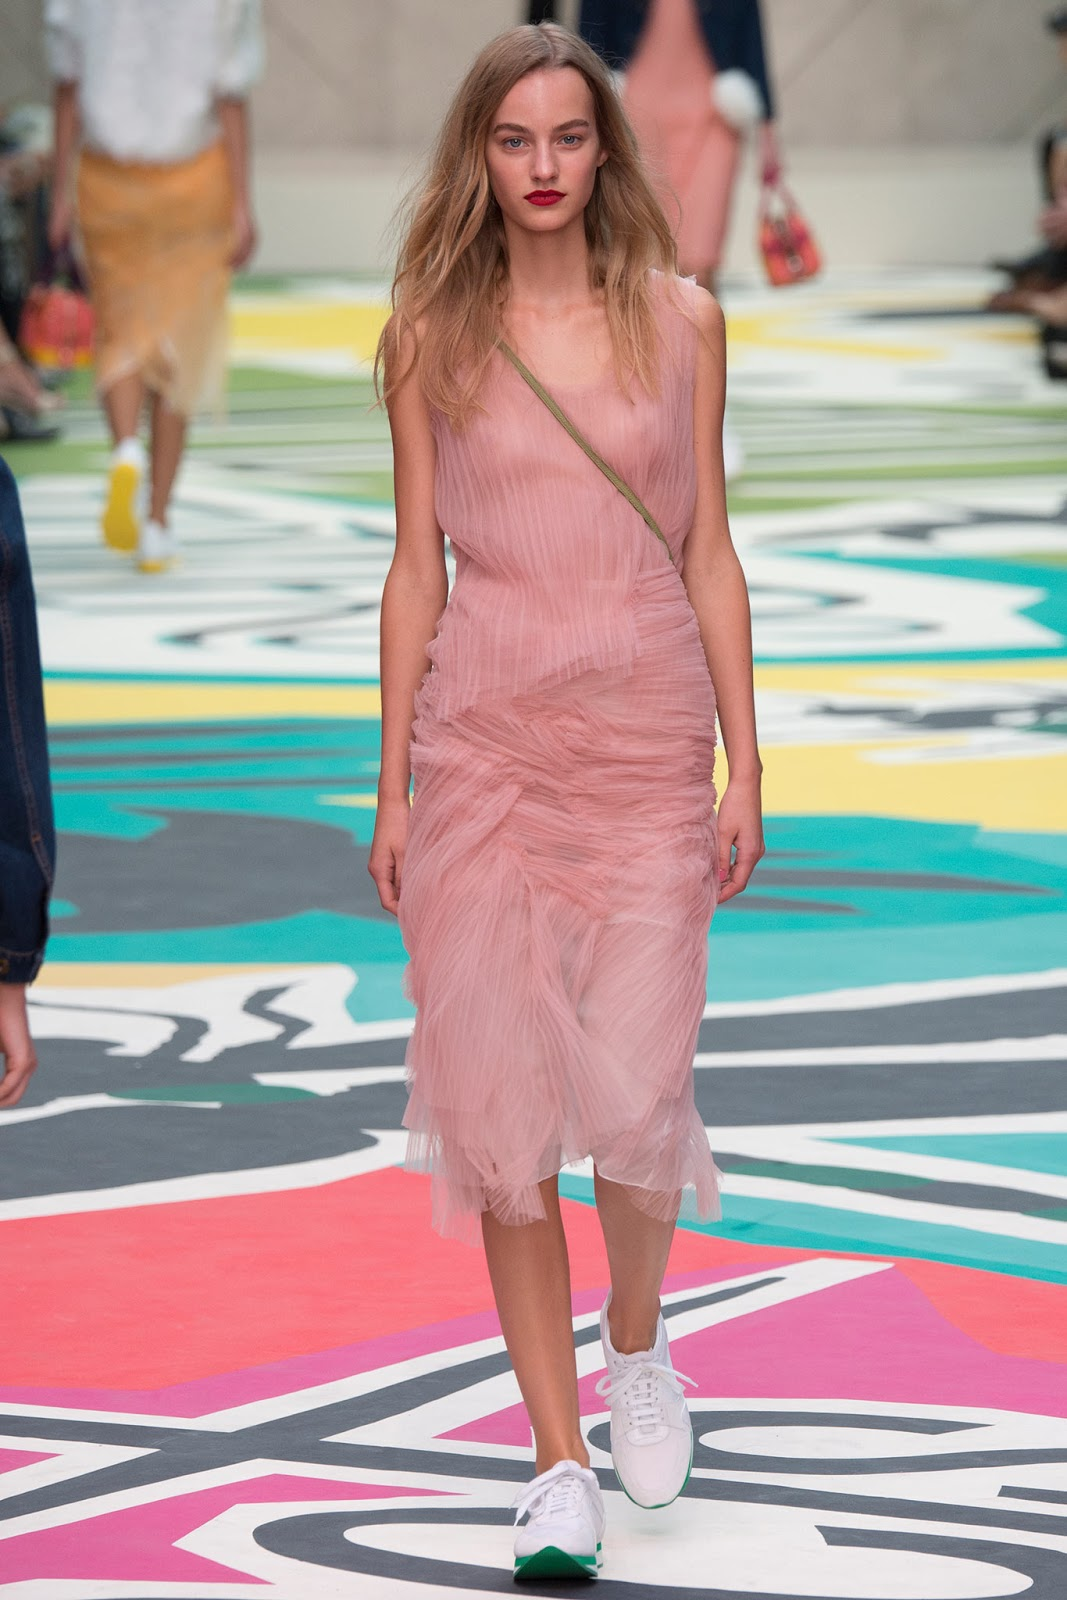 Pantone colour trend report 2015 / strawberry ice on a runway at Burberry Prorsum Spring/Summer 2015 via fashioned by love brutish fashion blog